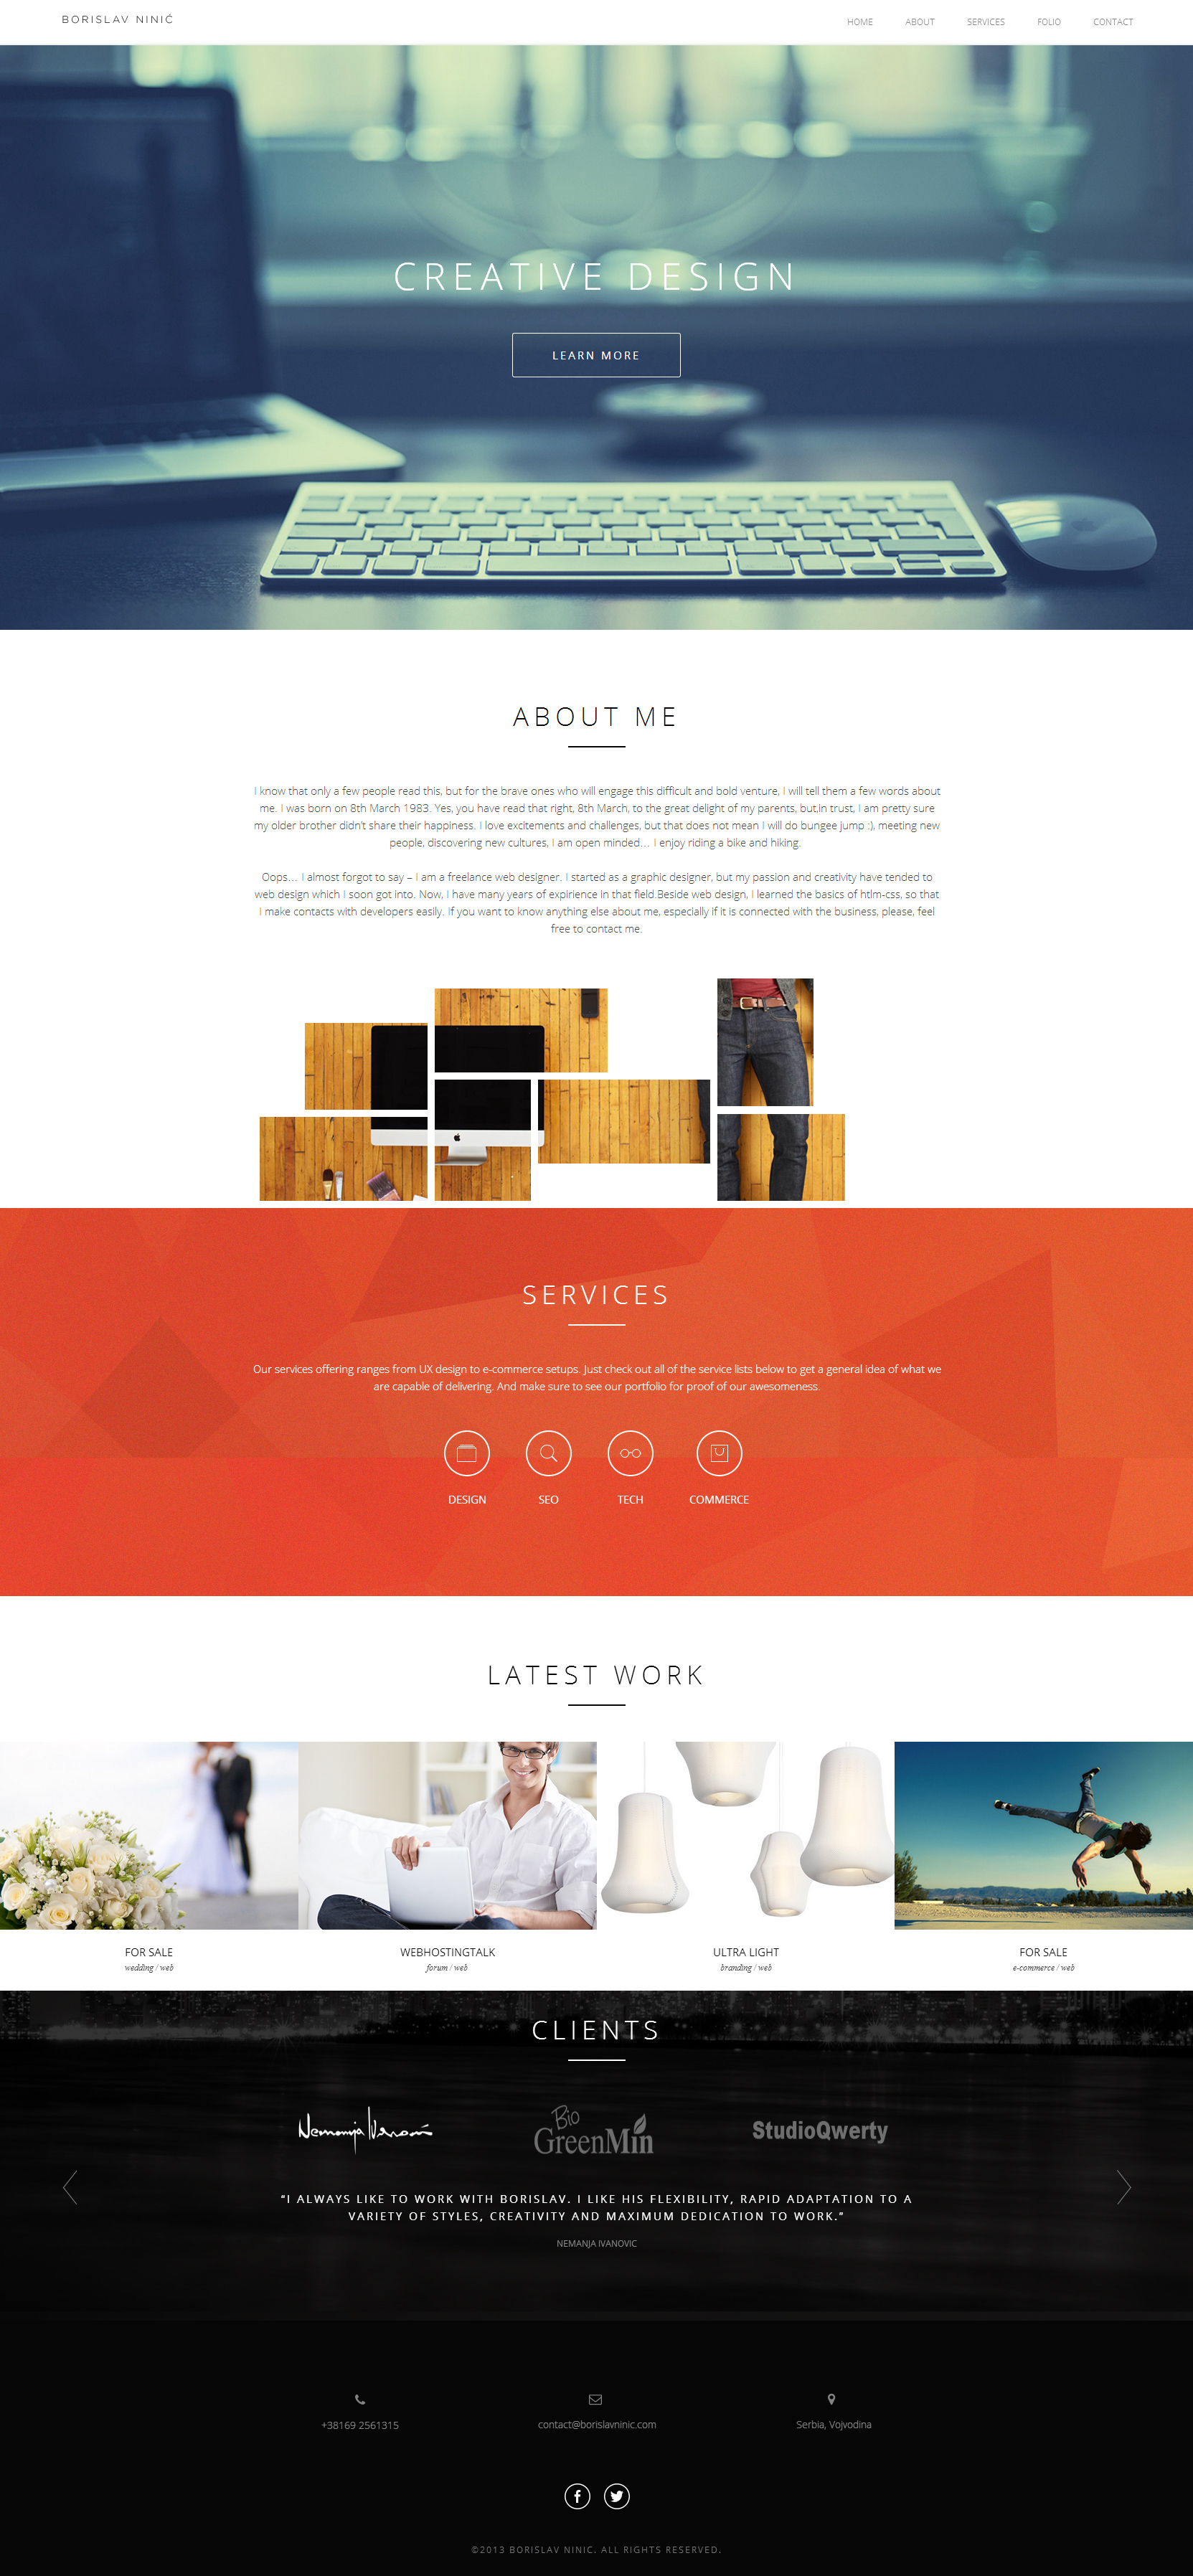 Borislav Ninic One Page Responsive Website